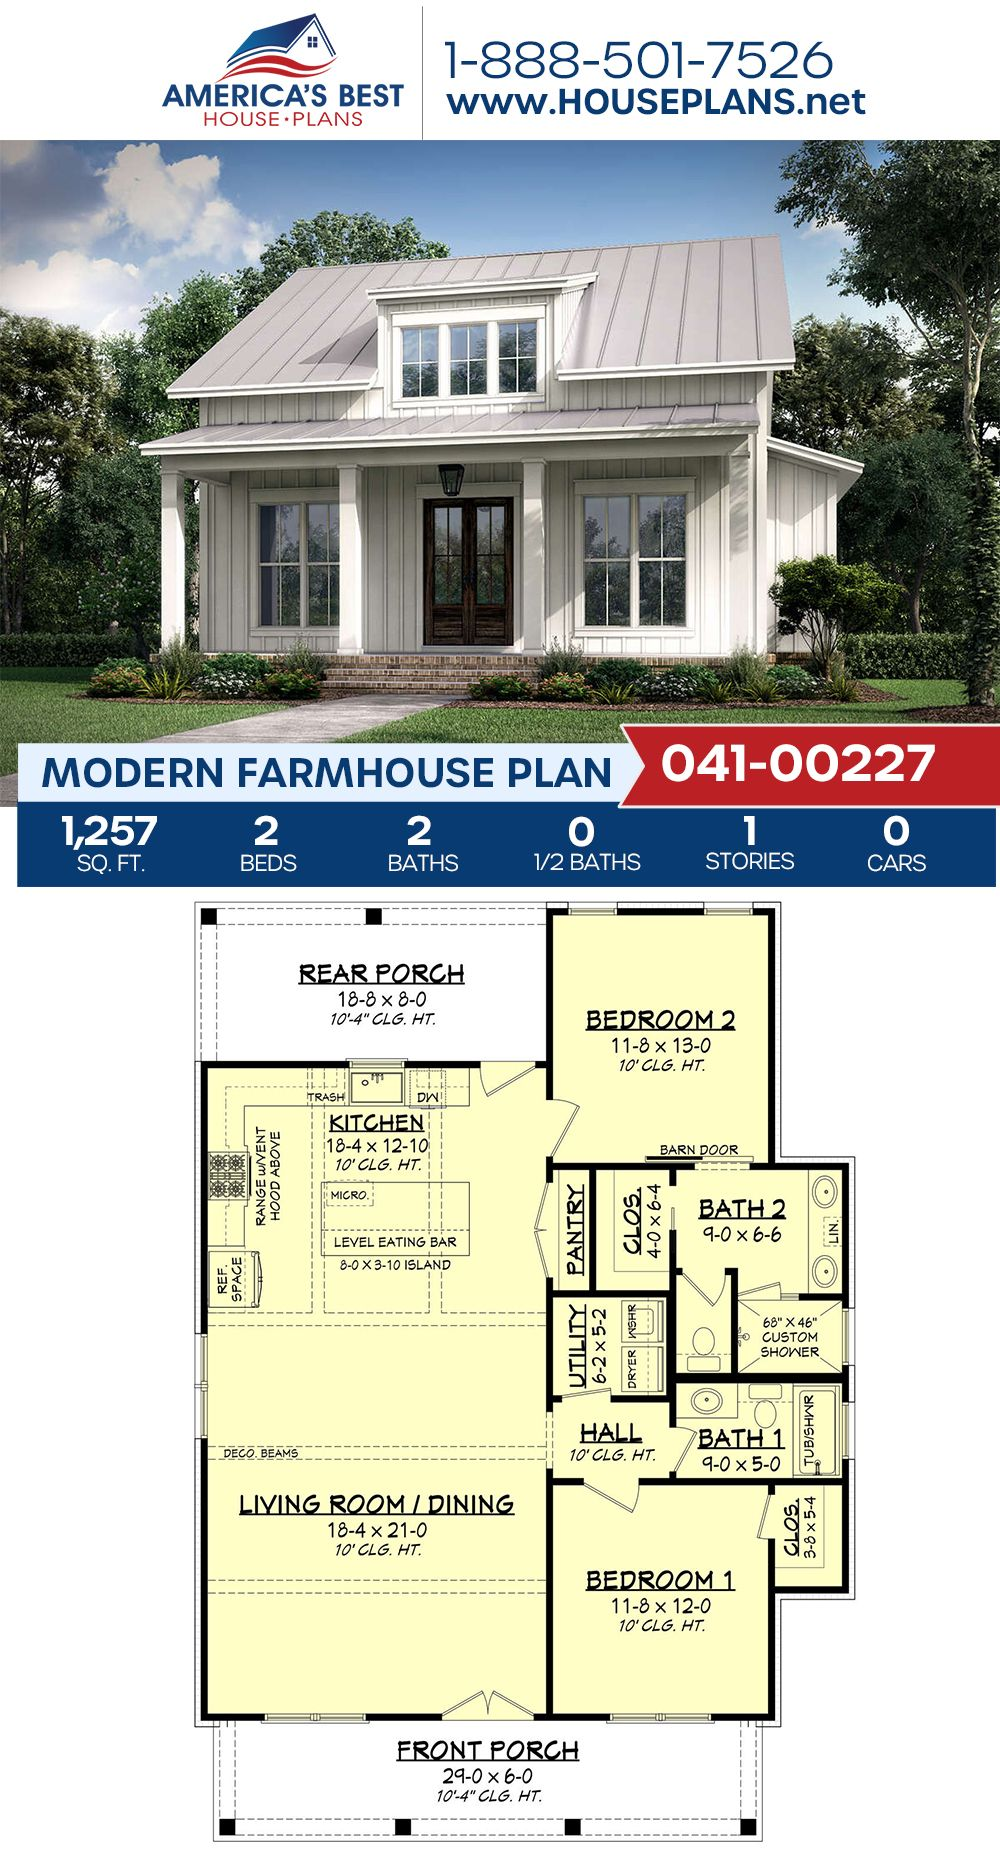 House Plan 041 00227 Modern Farmhouse Plan 1 257 Square Feet 2 Bedrooms 2 Bathrooms Guest House Plans House Plans Farmhouse Small Farmhouse Plans